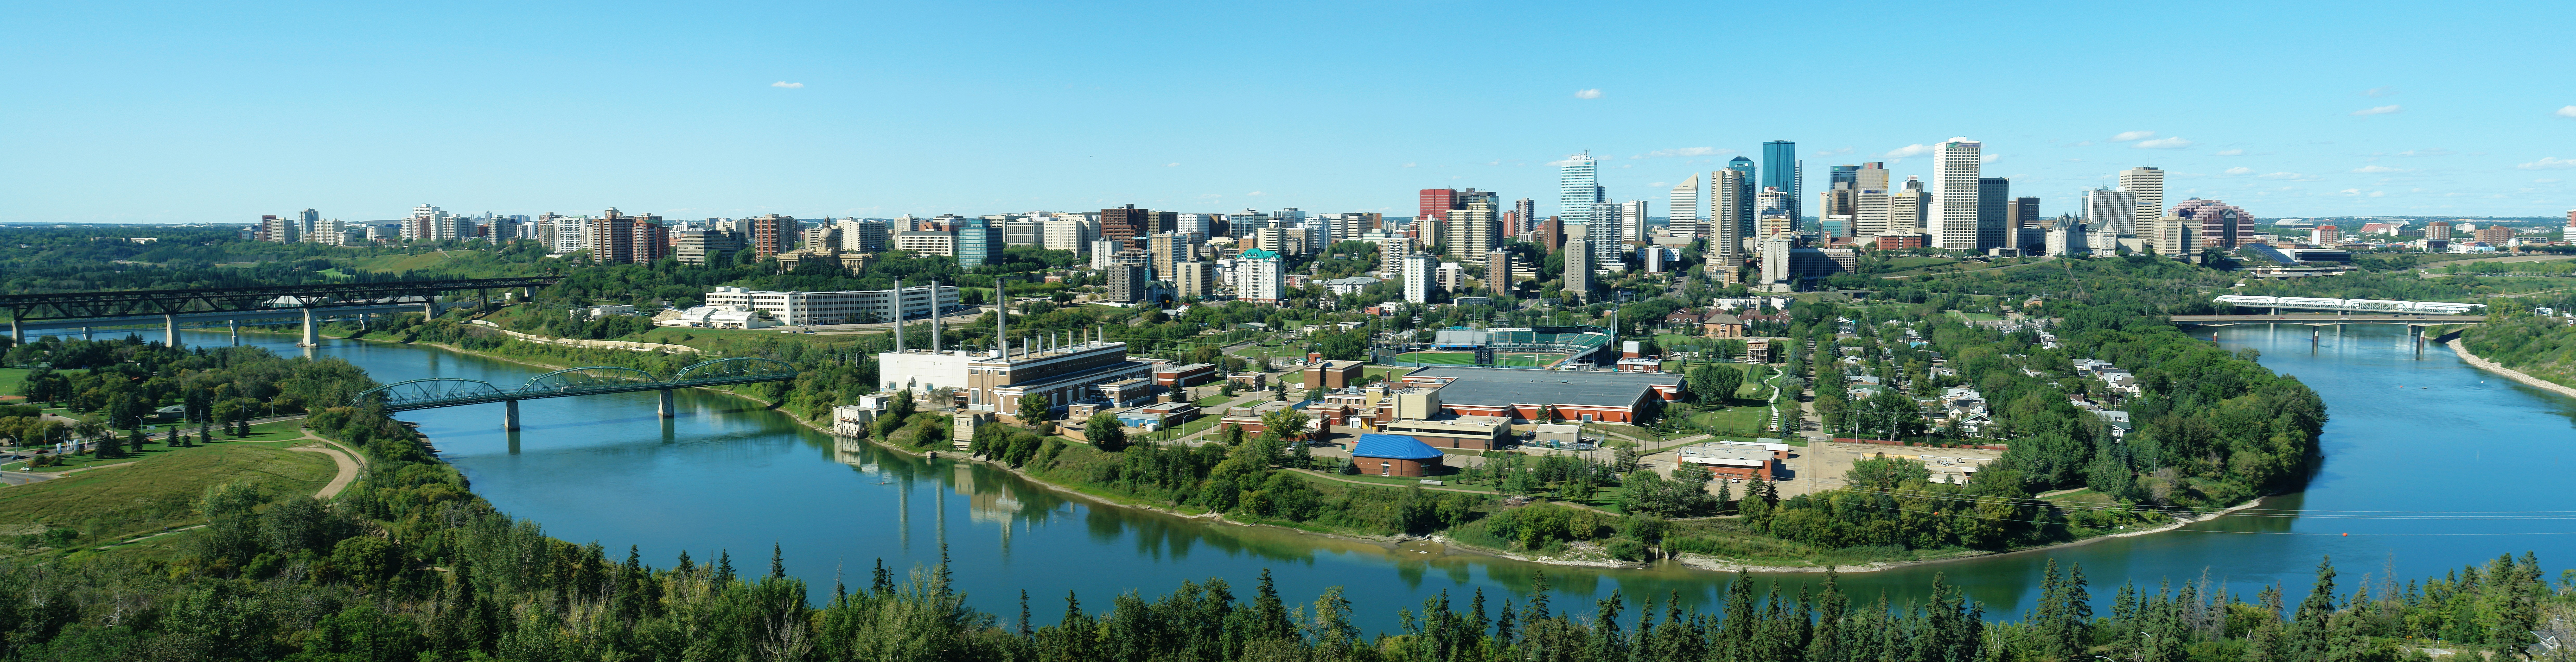 Edmonton The City With The Most Nicknames The Sutton